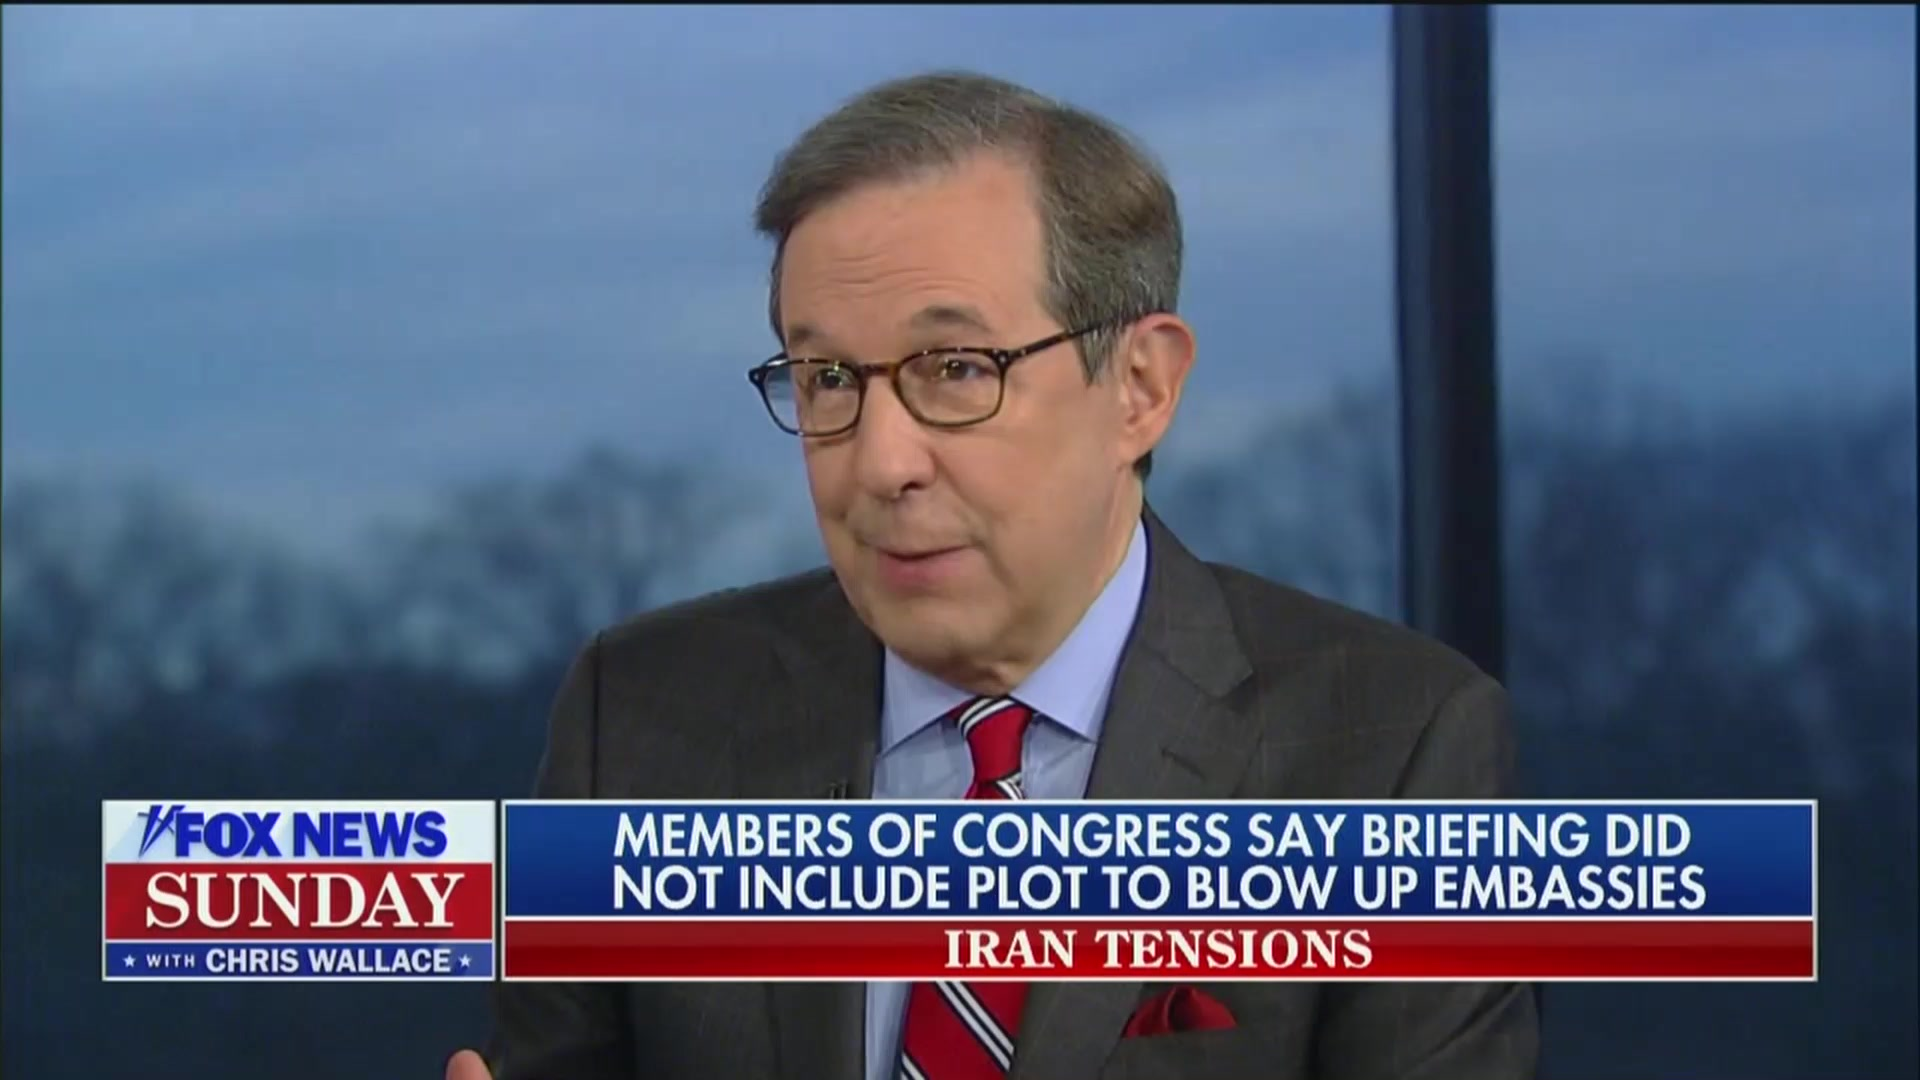 Chris Wallace to National Security Advisor: Why's Trump Telling Ingraham About Embassy Attacks But Not Congress?